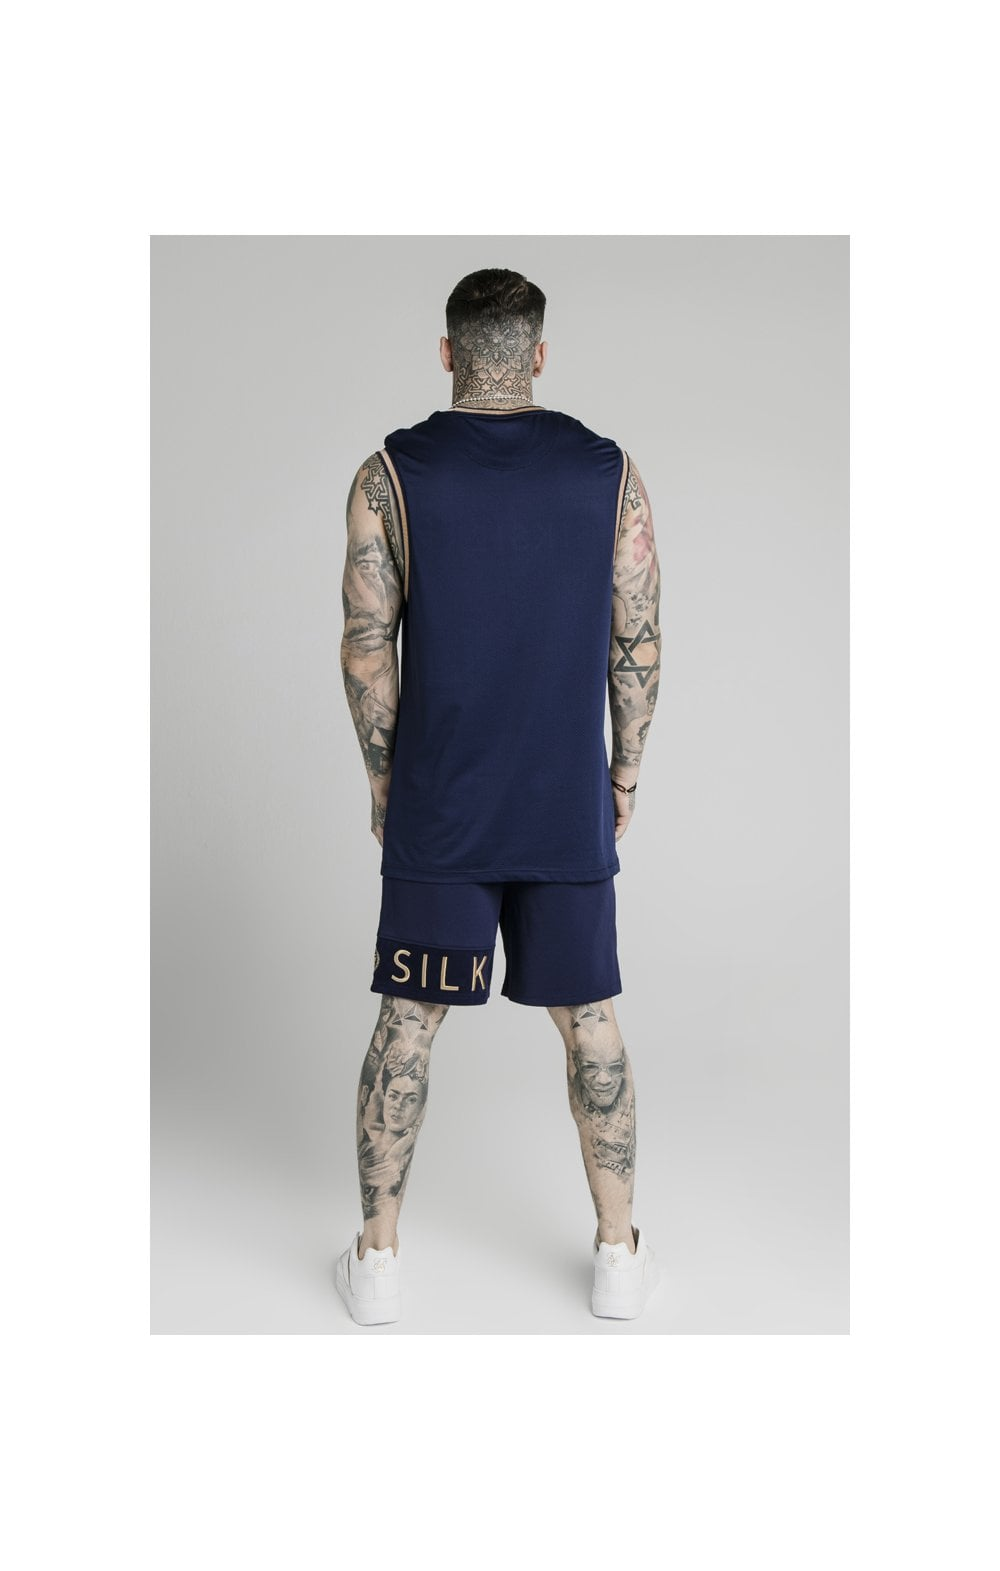 Load image into Gallery viewer, SikSilk Eyelet Mesh Basketball Vest - Navy Eclipse (5)